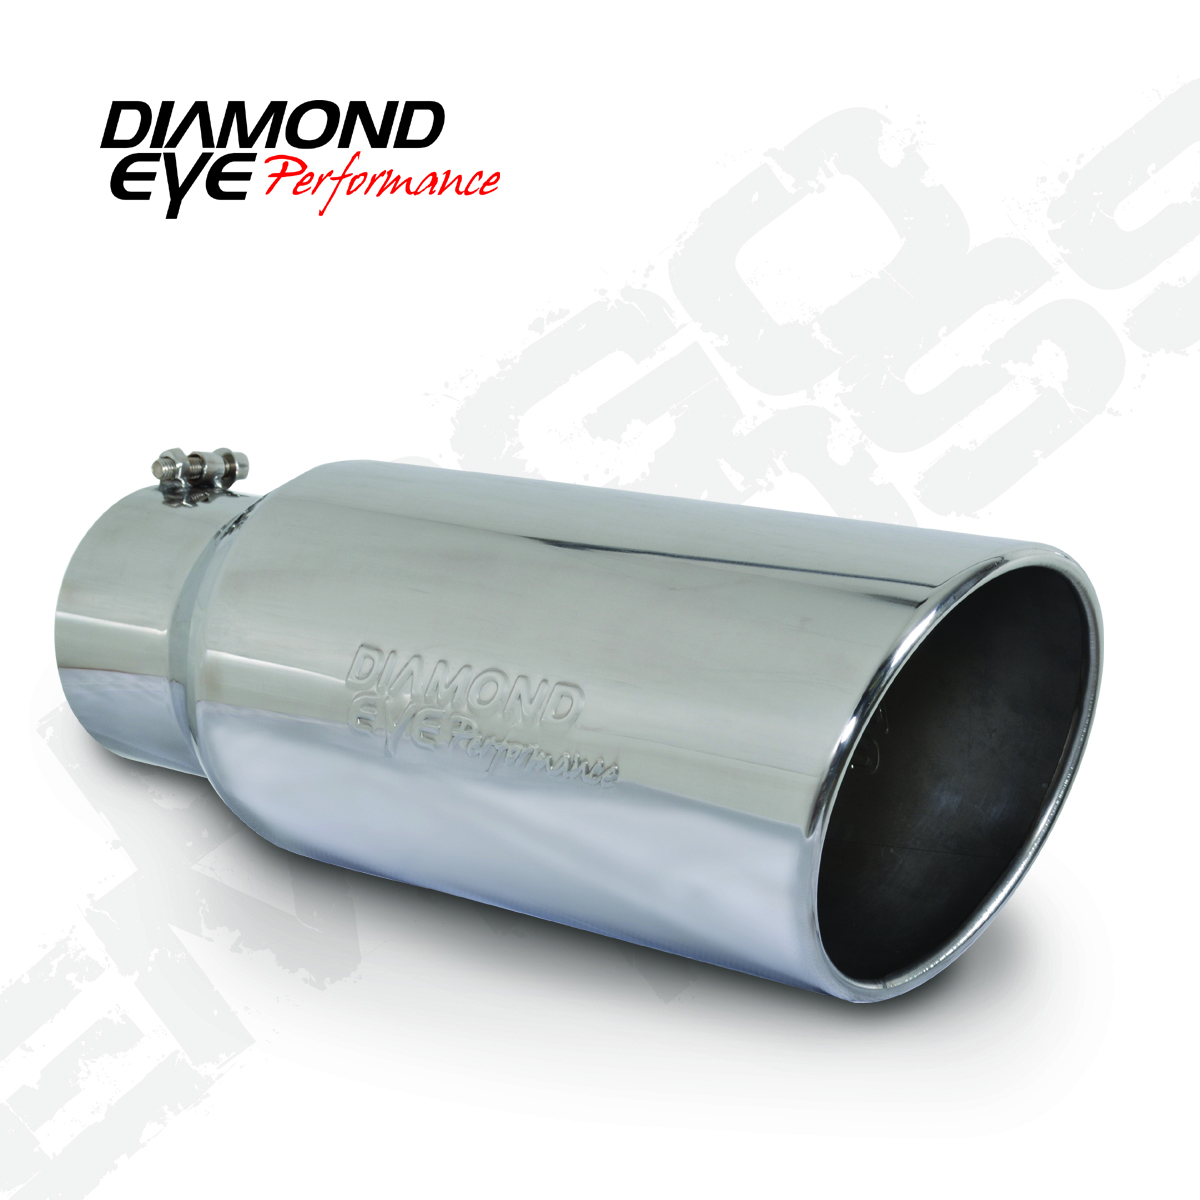 4 INLET X 5 OUTLET X 12 LONG... Diamond Eye Manufacturing Exhaust Tail Pipe Tip